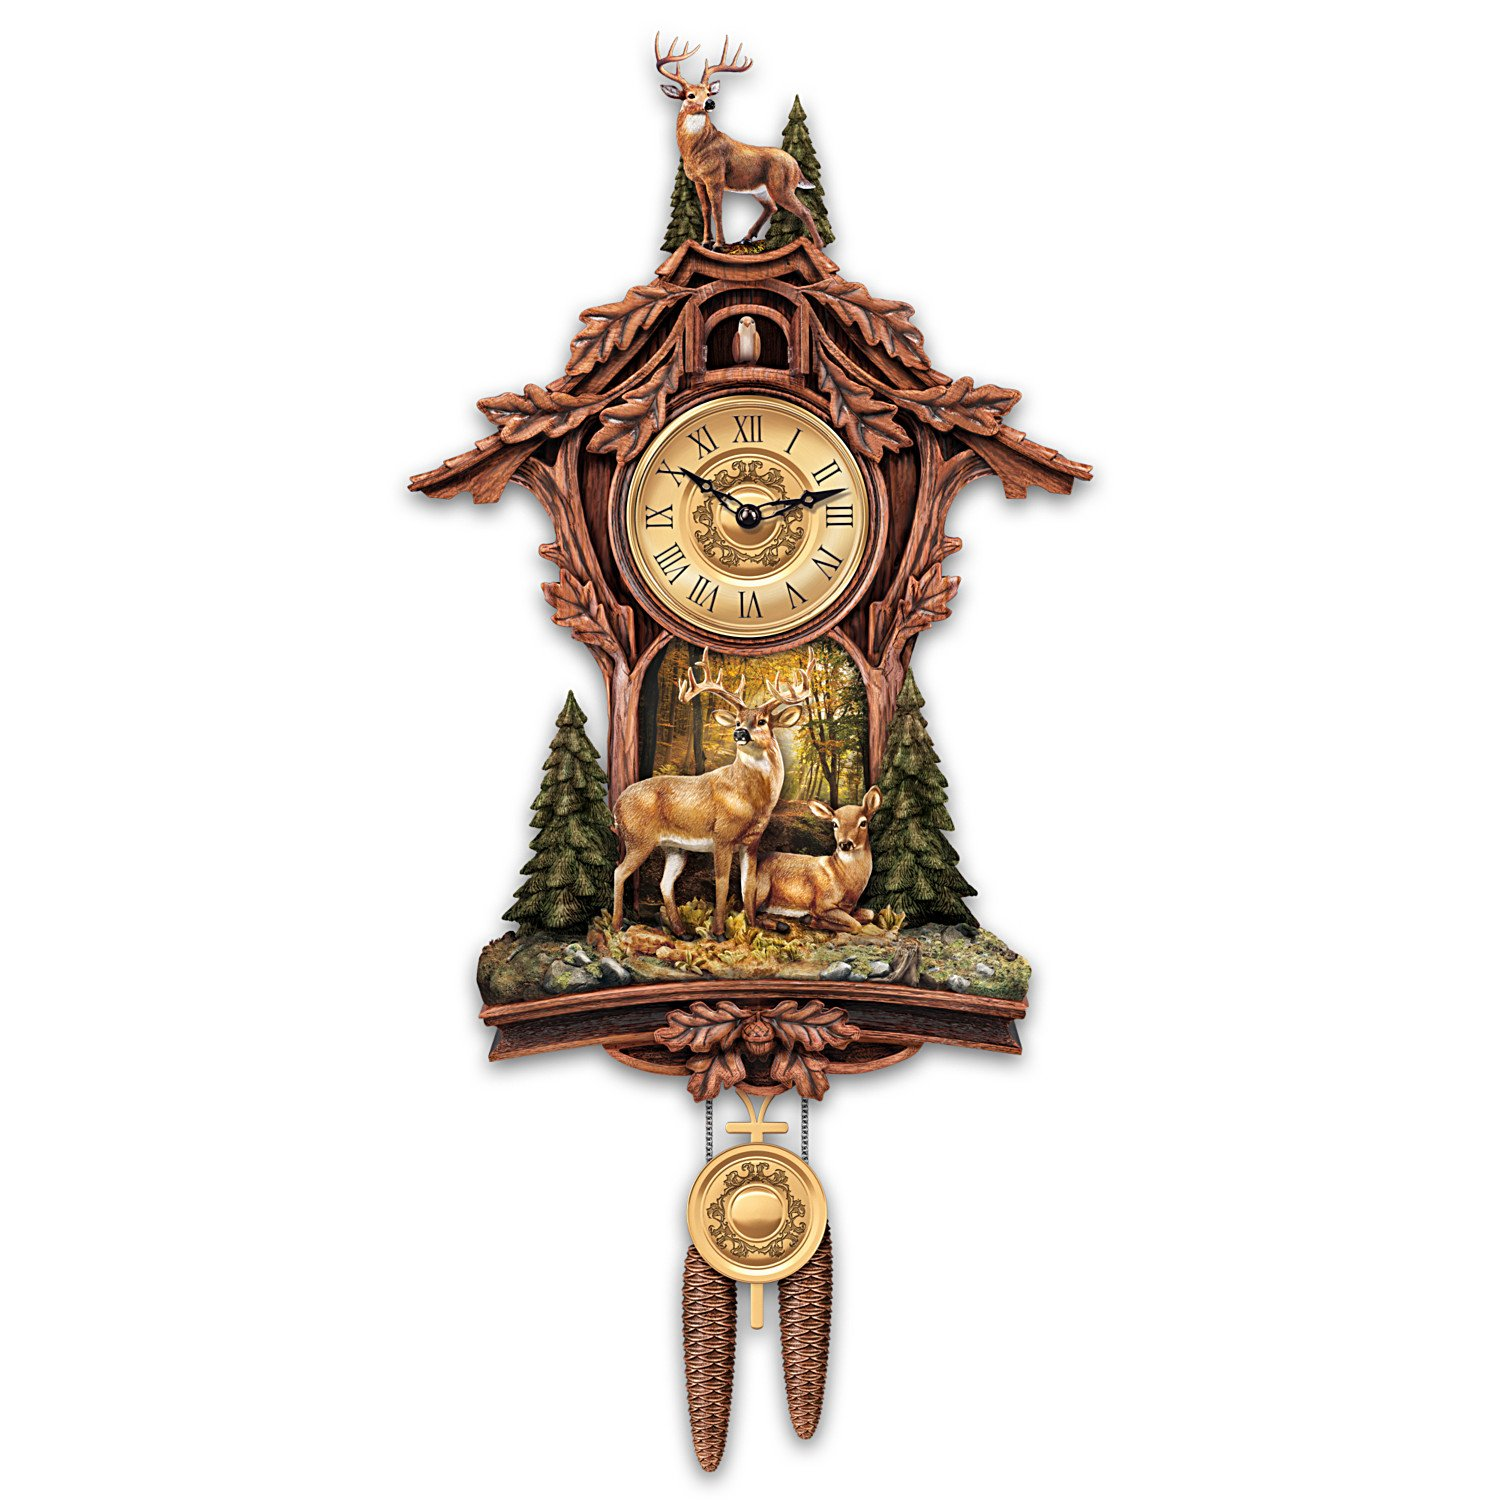 Sculpted Deer Cuckoo Clock with Sculpted 10 Point Buck at Top by The Bradford Exchange